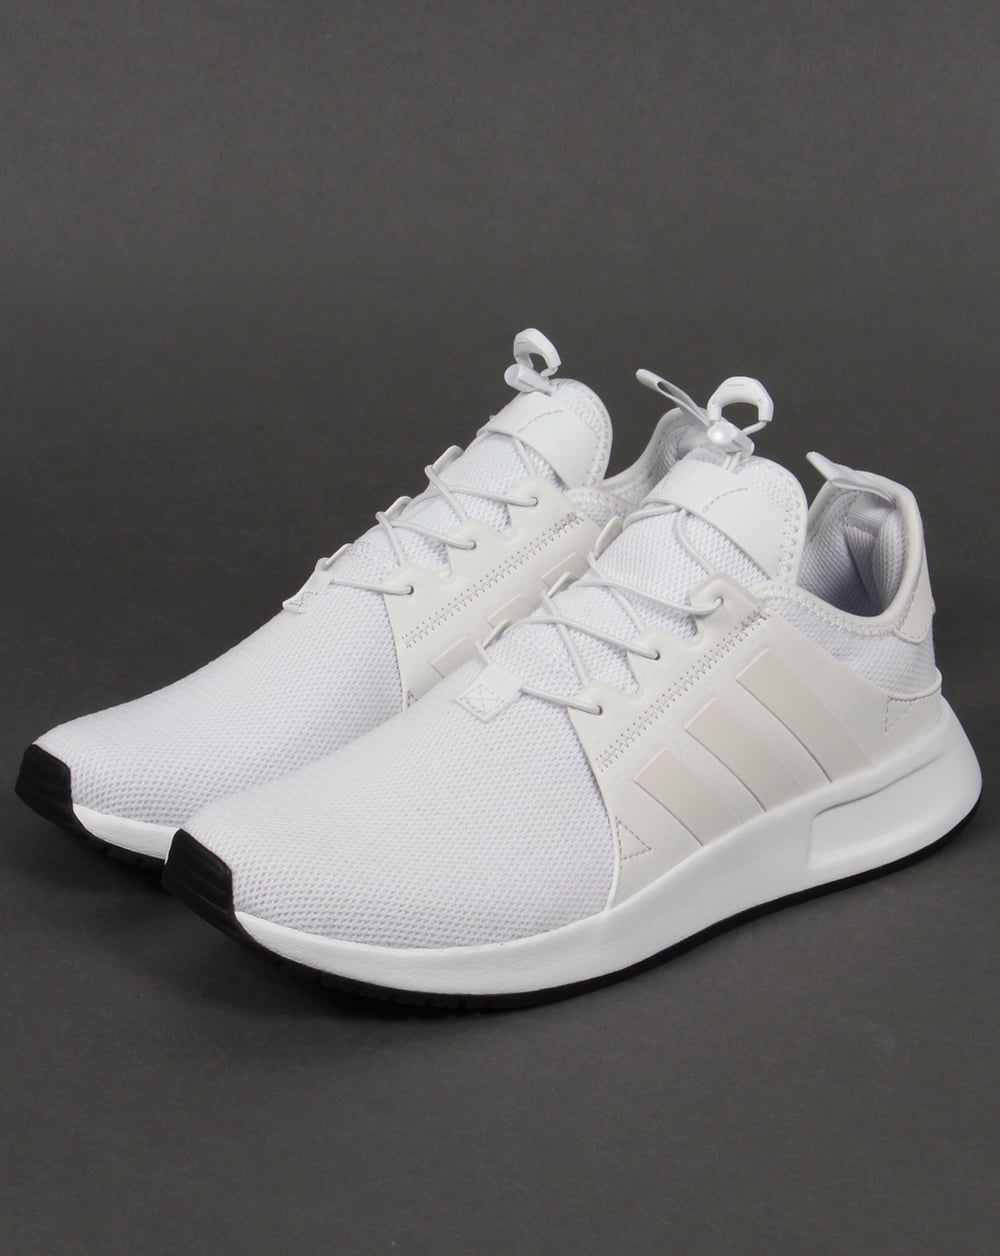 adidas xplr trainers triple white shoes originals sneakers. Black Bedroom Furniture Sets. Home Design Ideas